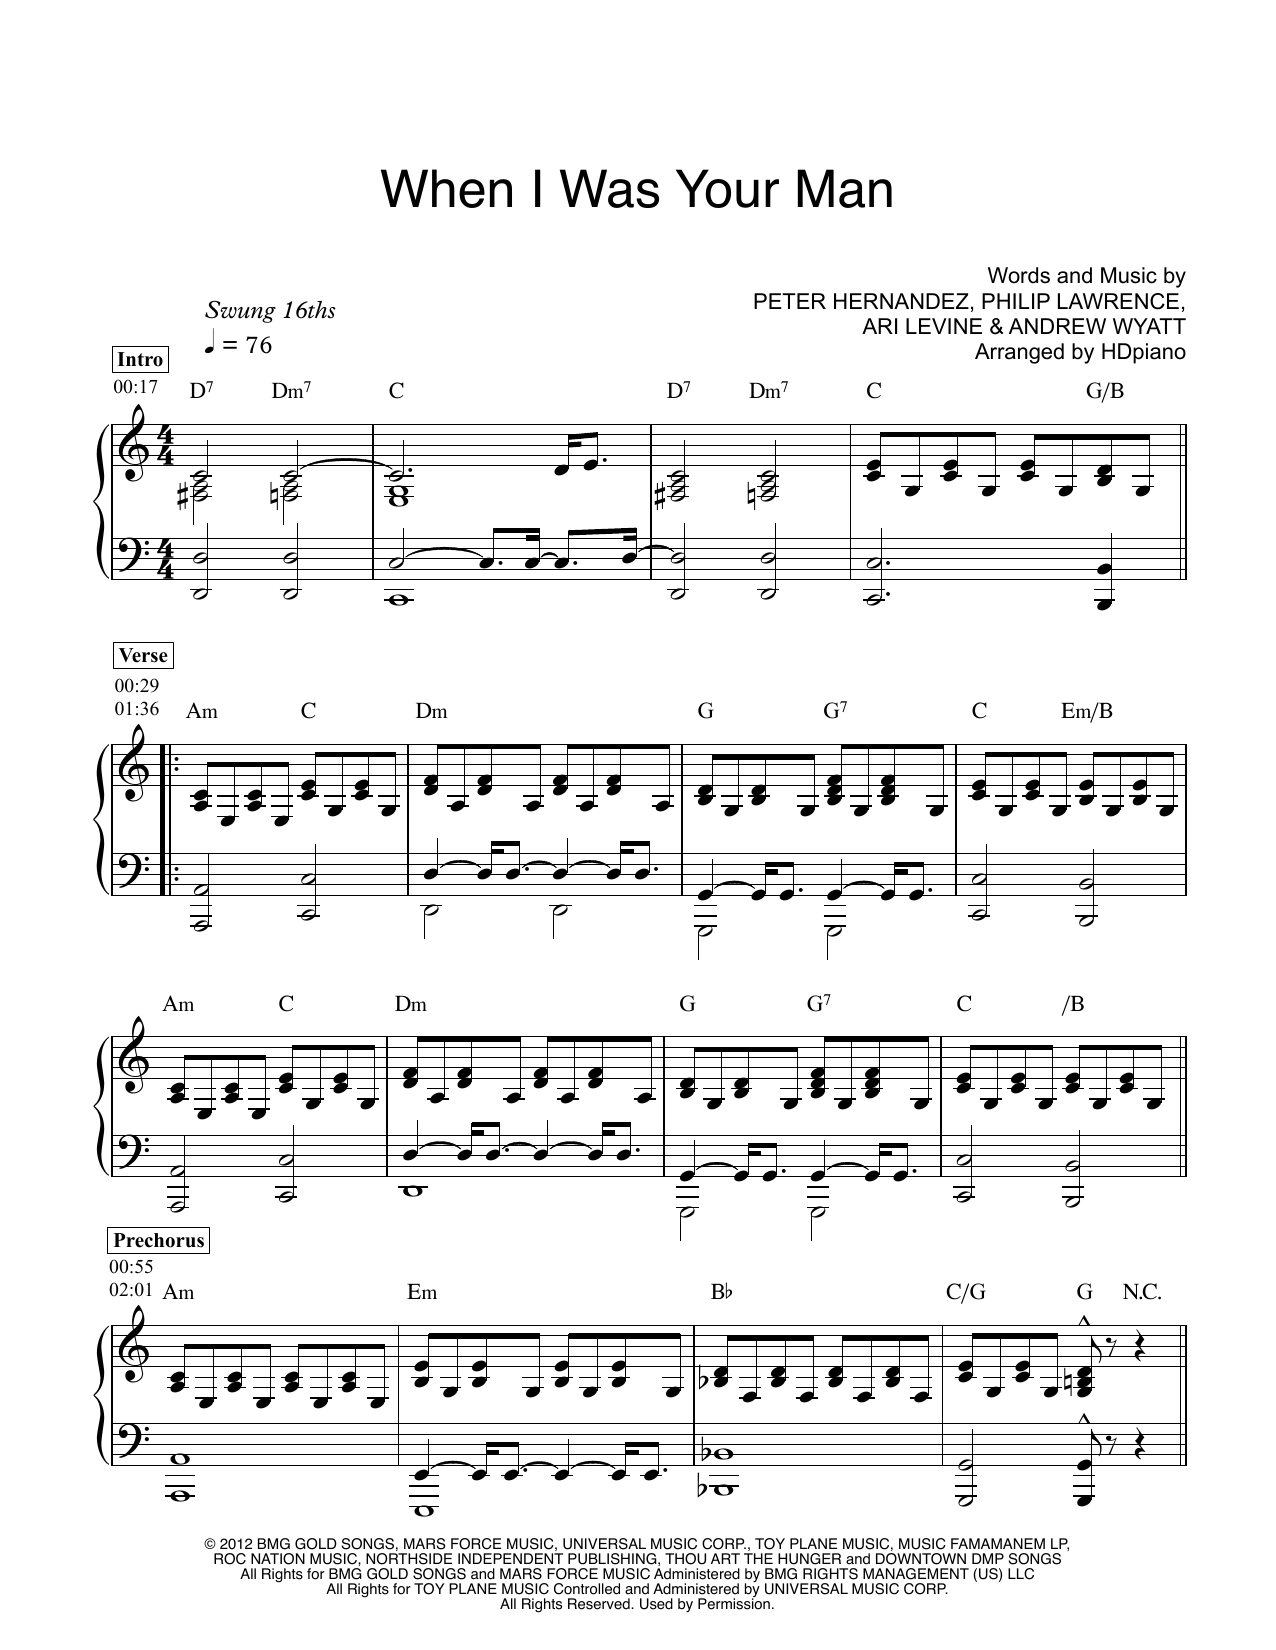 When I Was Your Man Sheet Music Direct